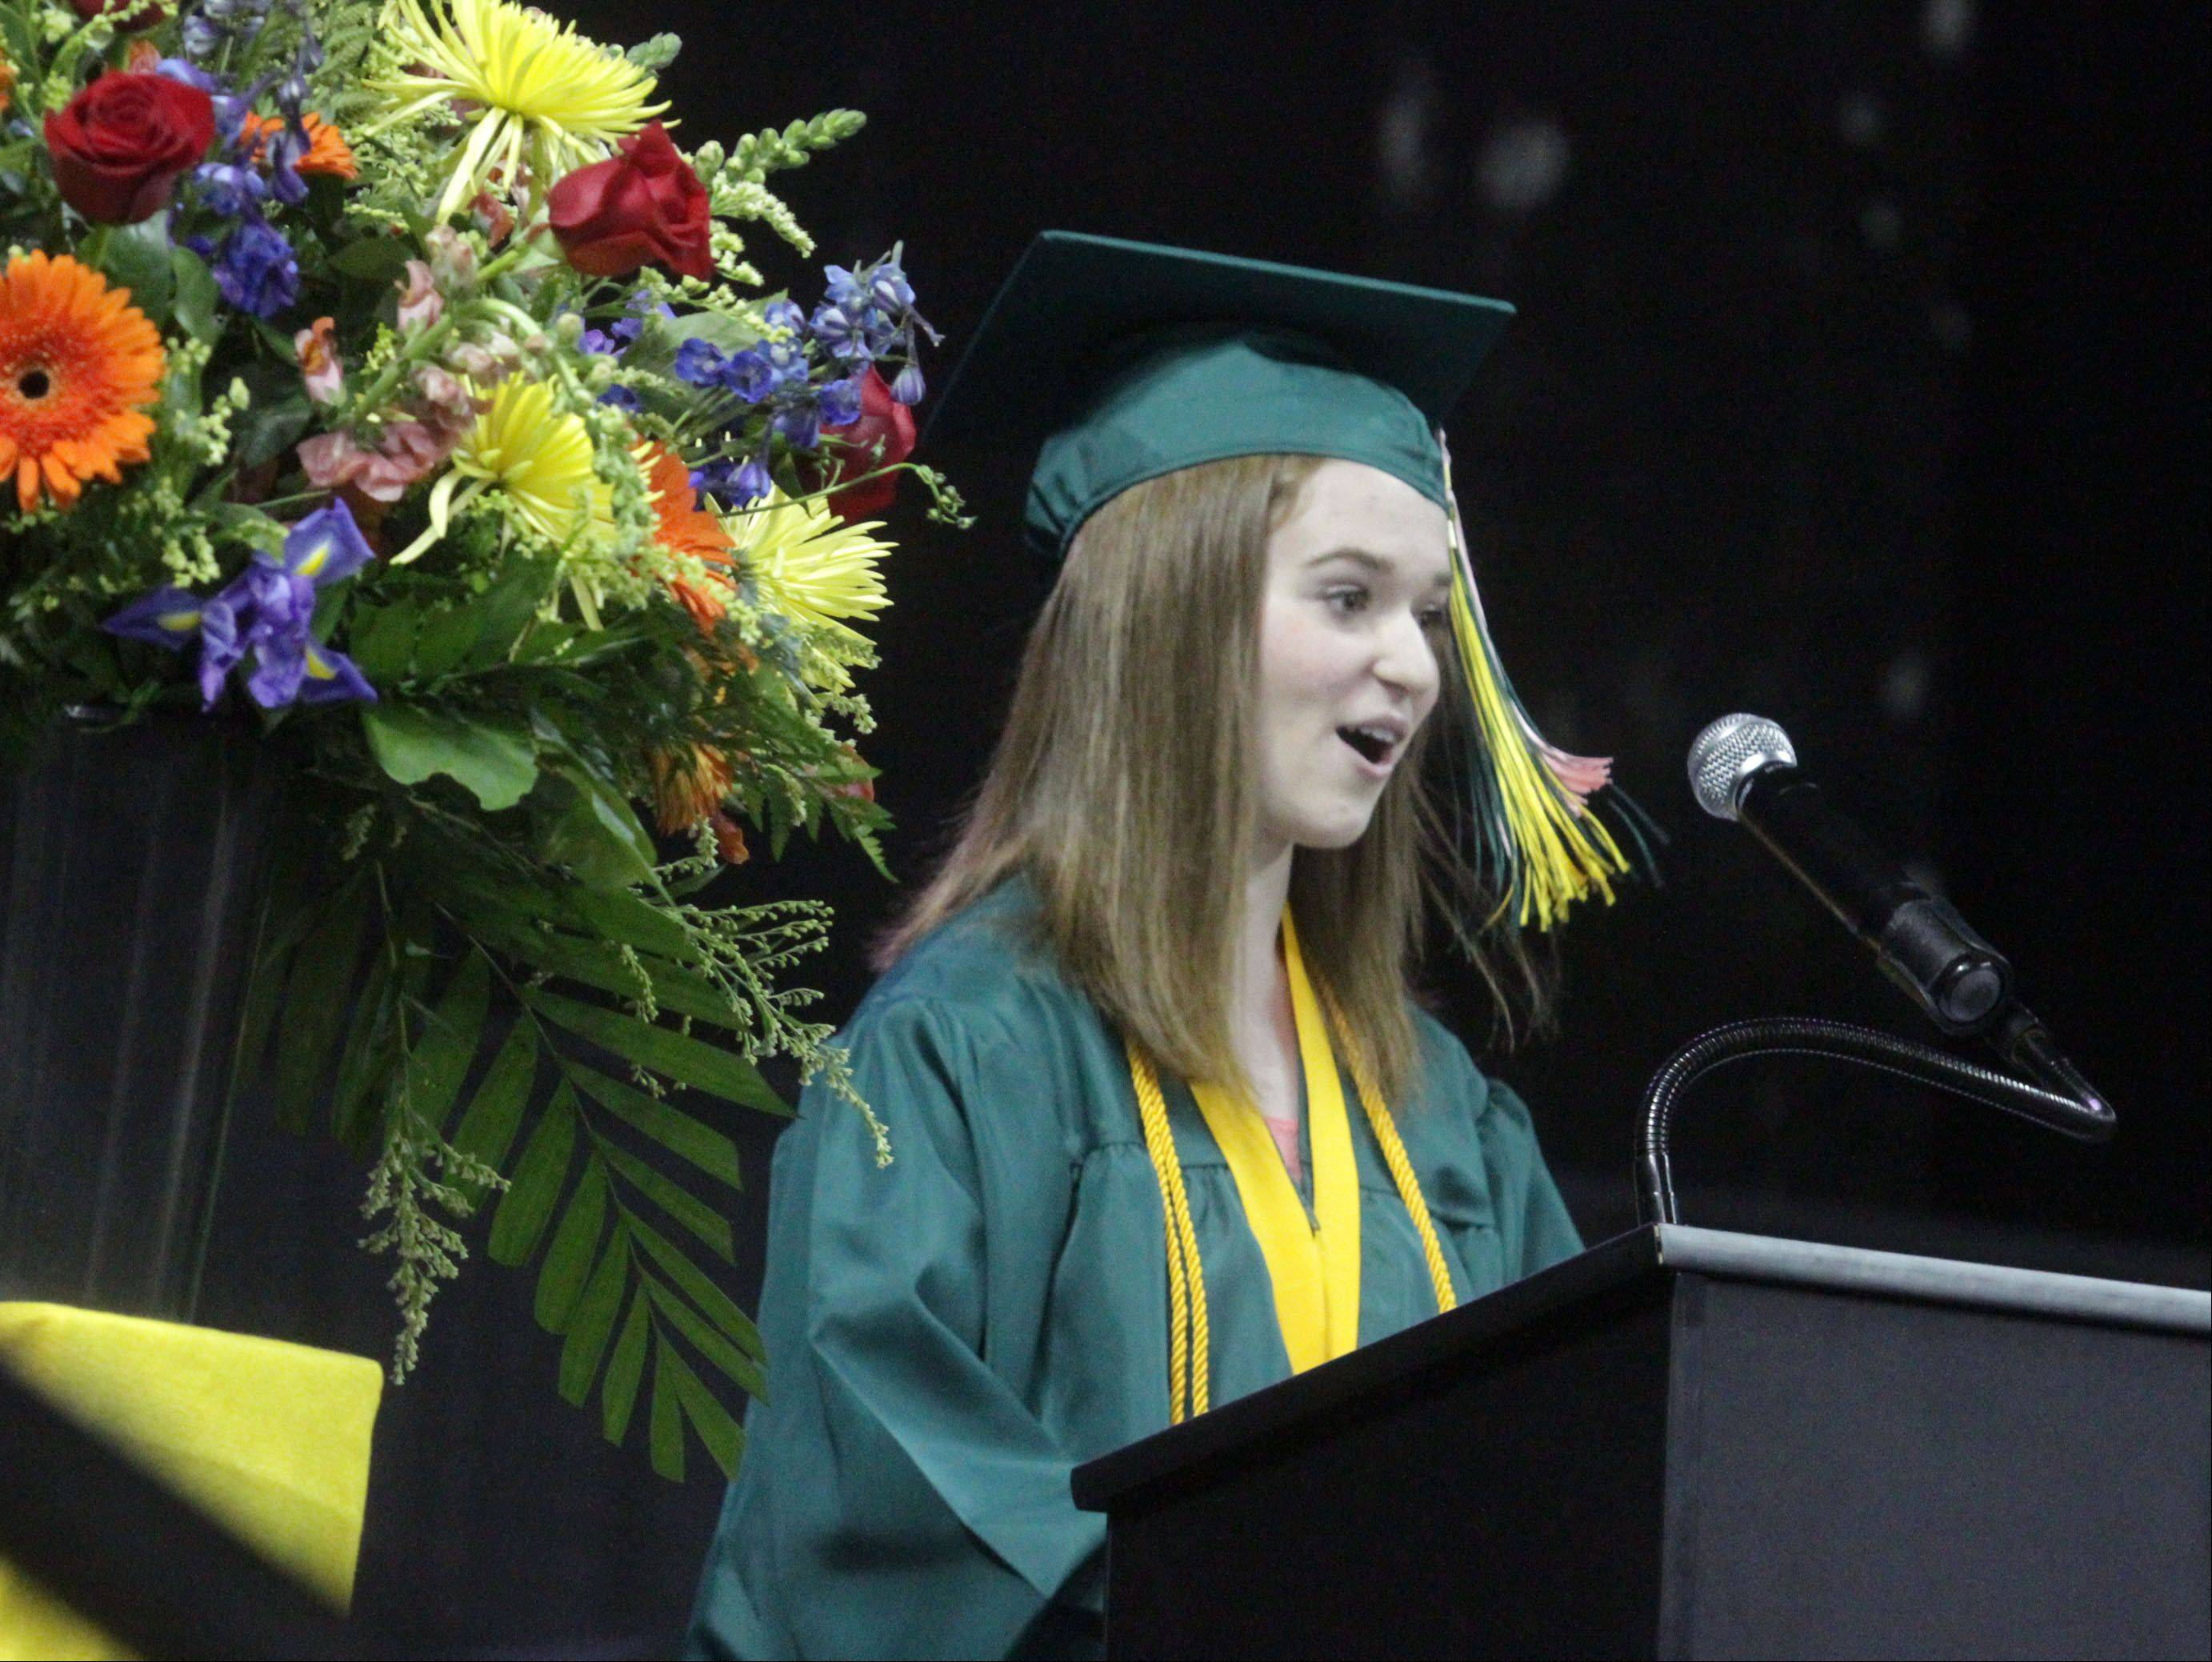 Elizabeth Davies-Hogg gives the senior address at Fremd High School's commencement ceremony at the Sears Centre in Hoffman Estates on Sunday.